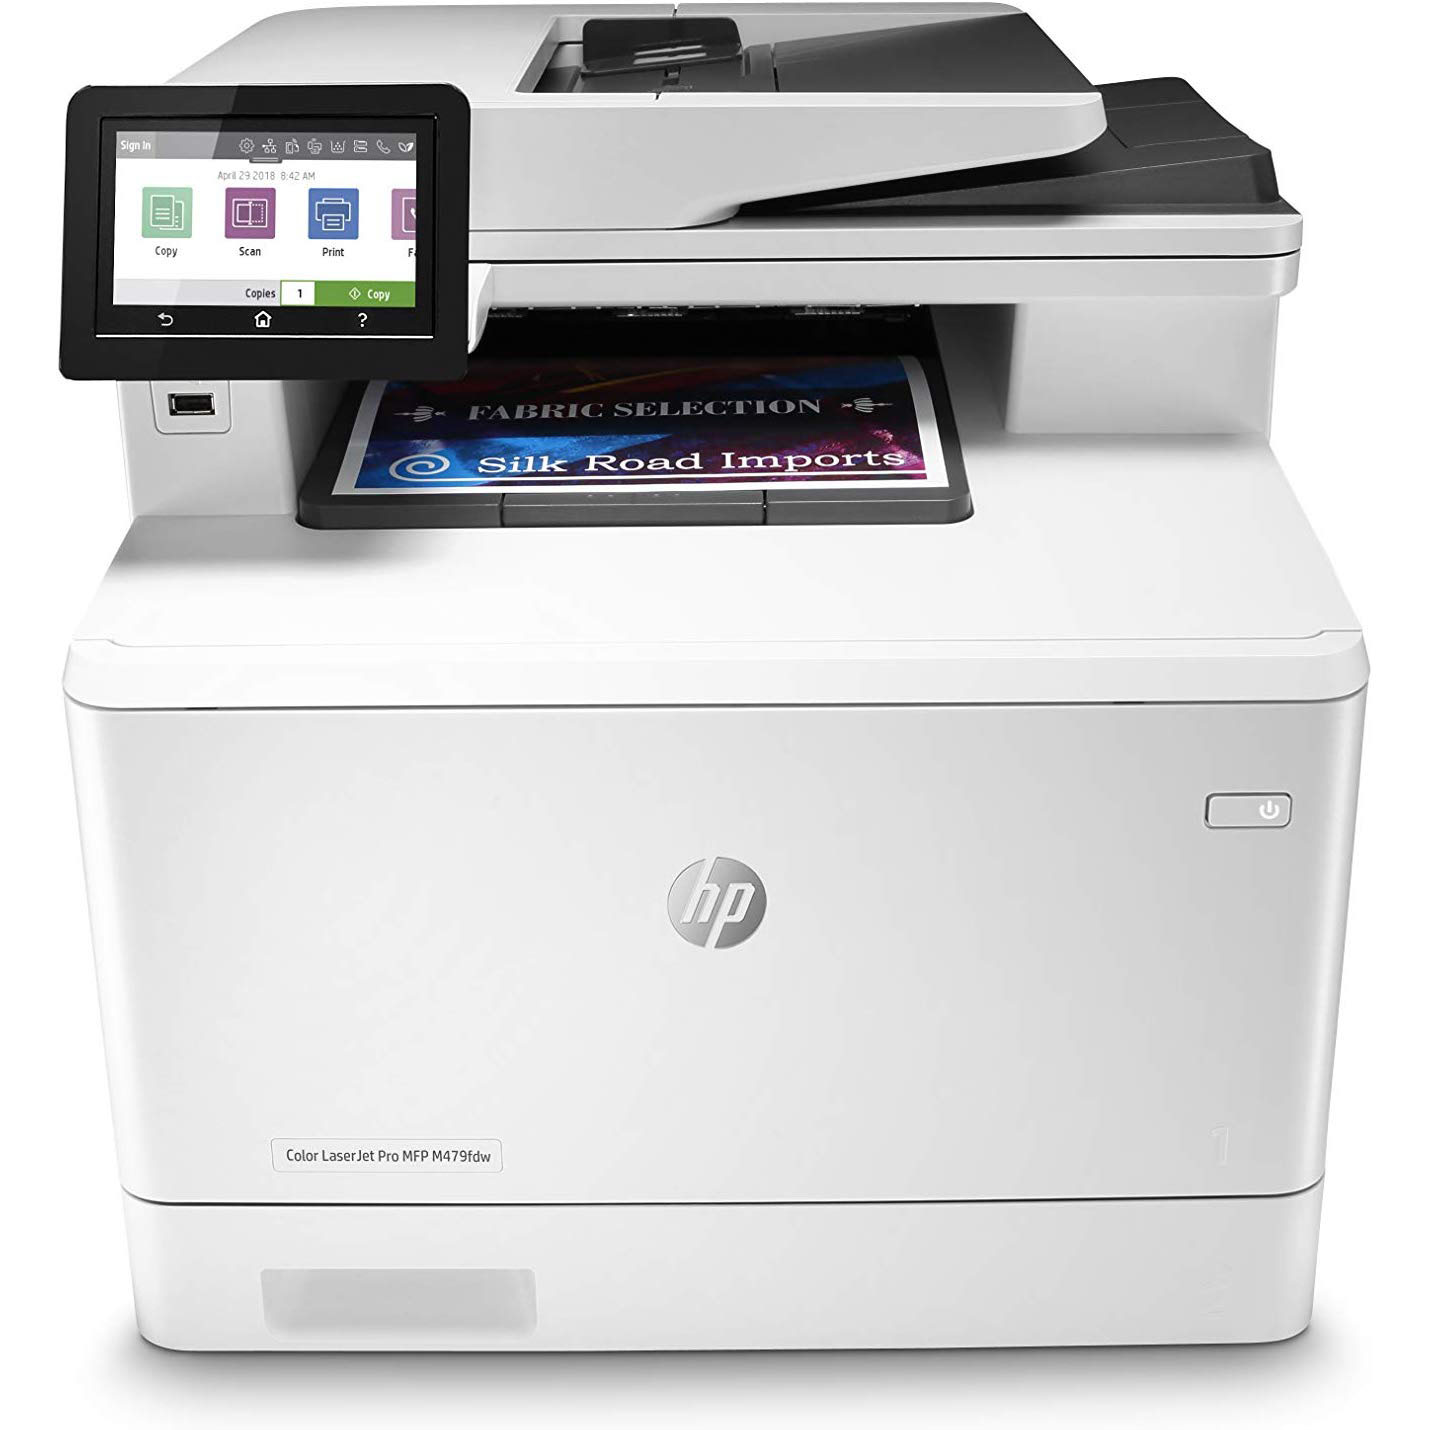 HP LaserJet Pro MFP M479fdw Color Printer